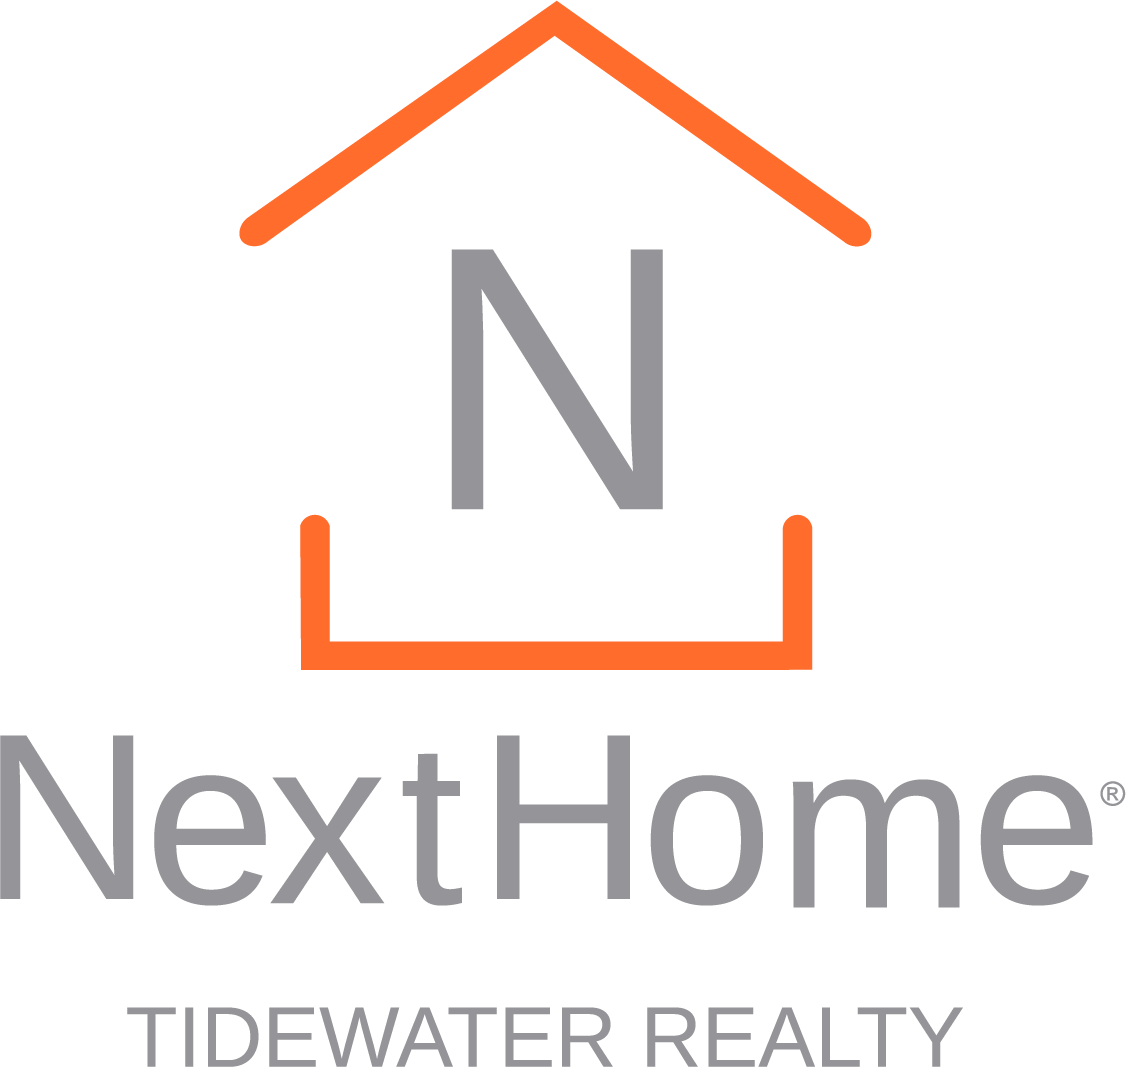 NextHome - Tidewater Realty